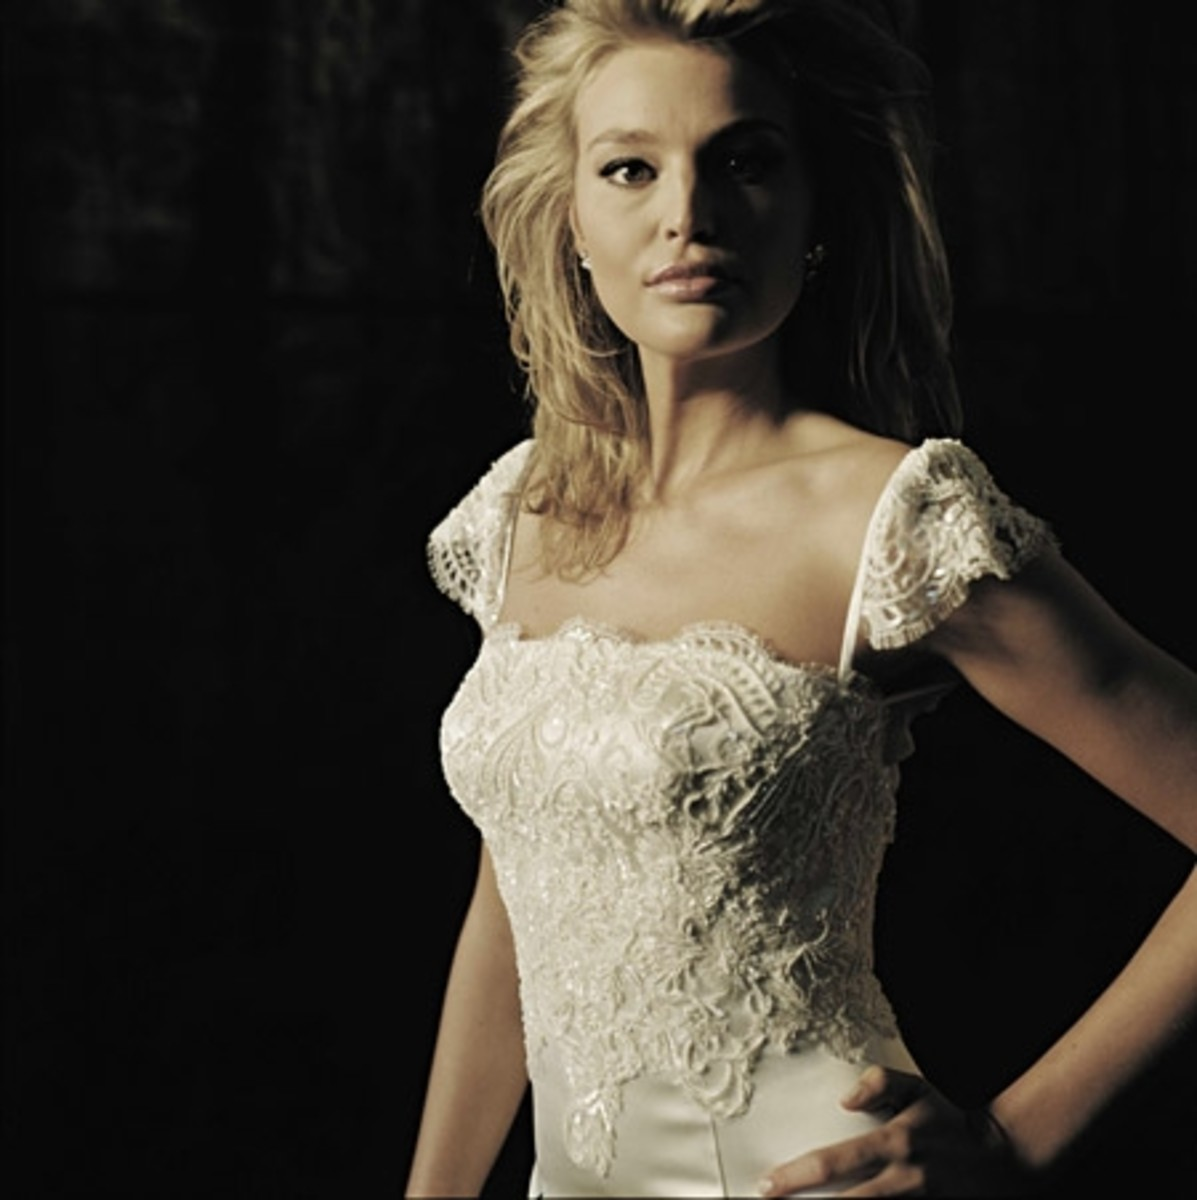 Bodice made up of French Guipure Lace by Lisa Gowing Couture Bridal